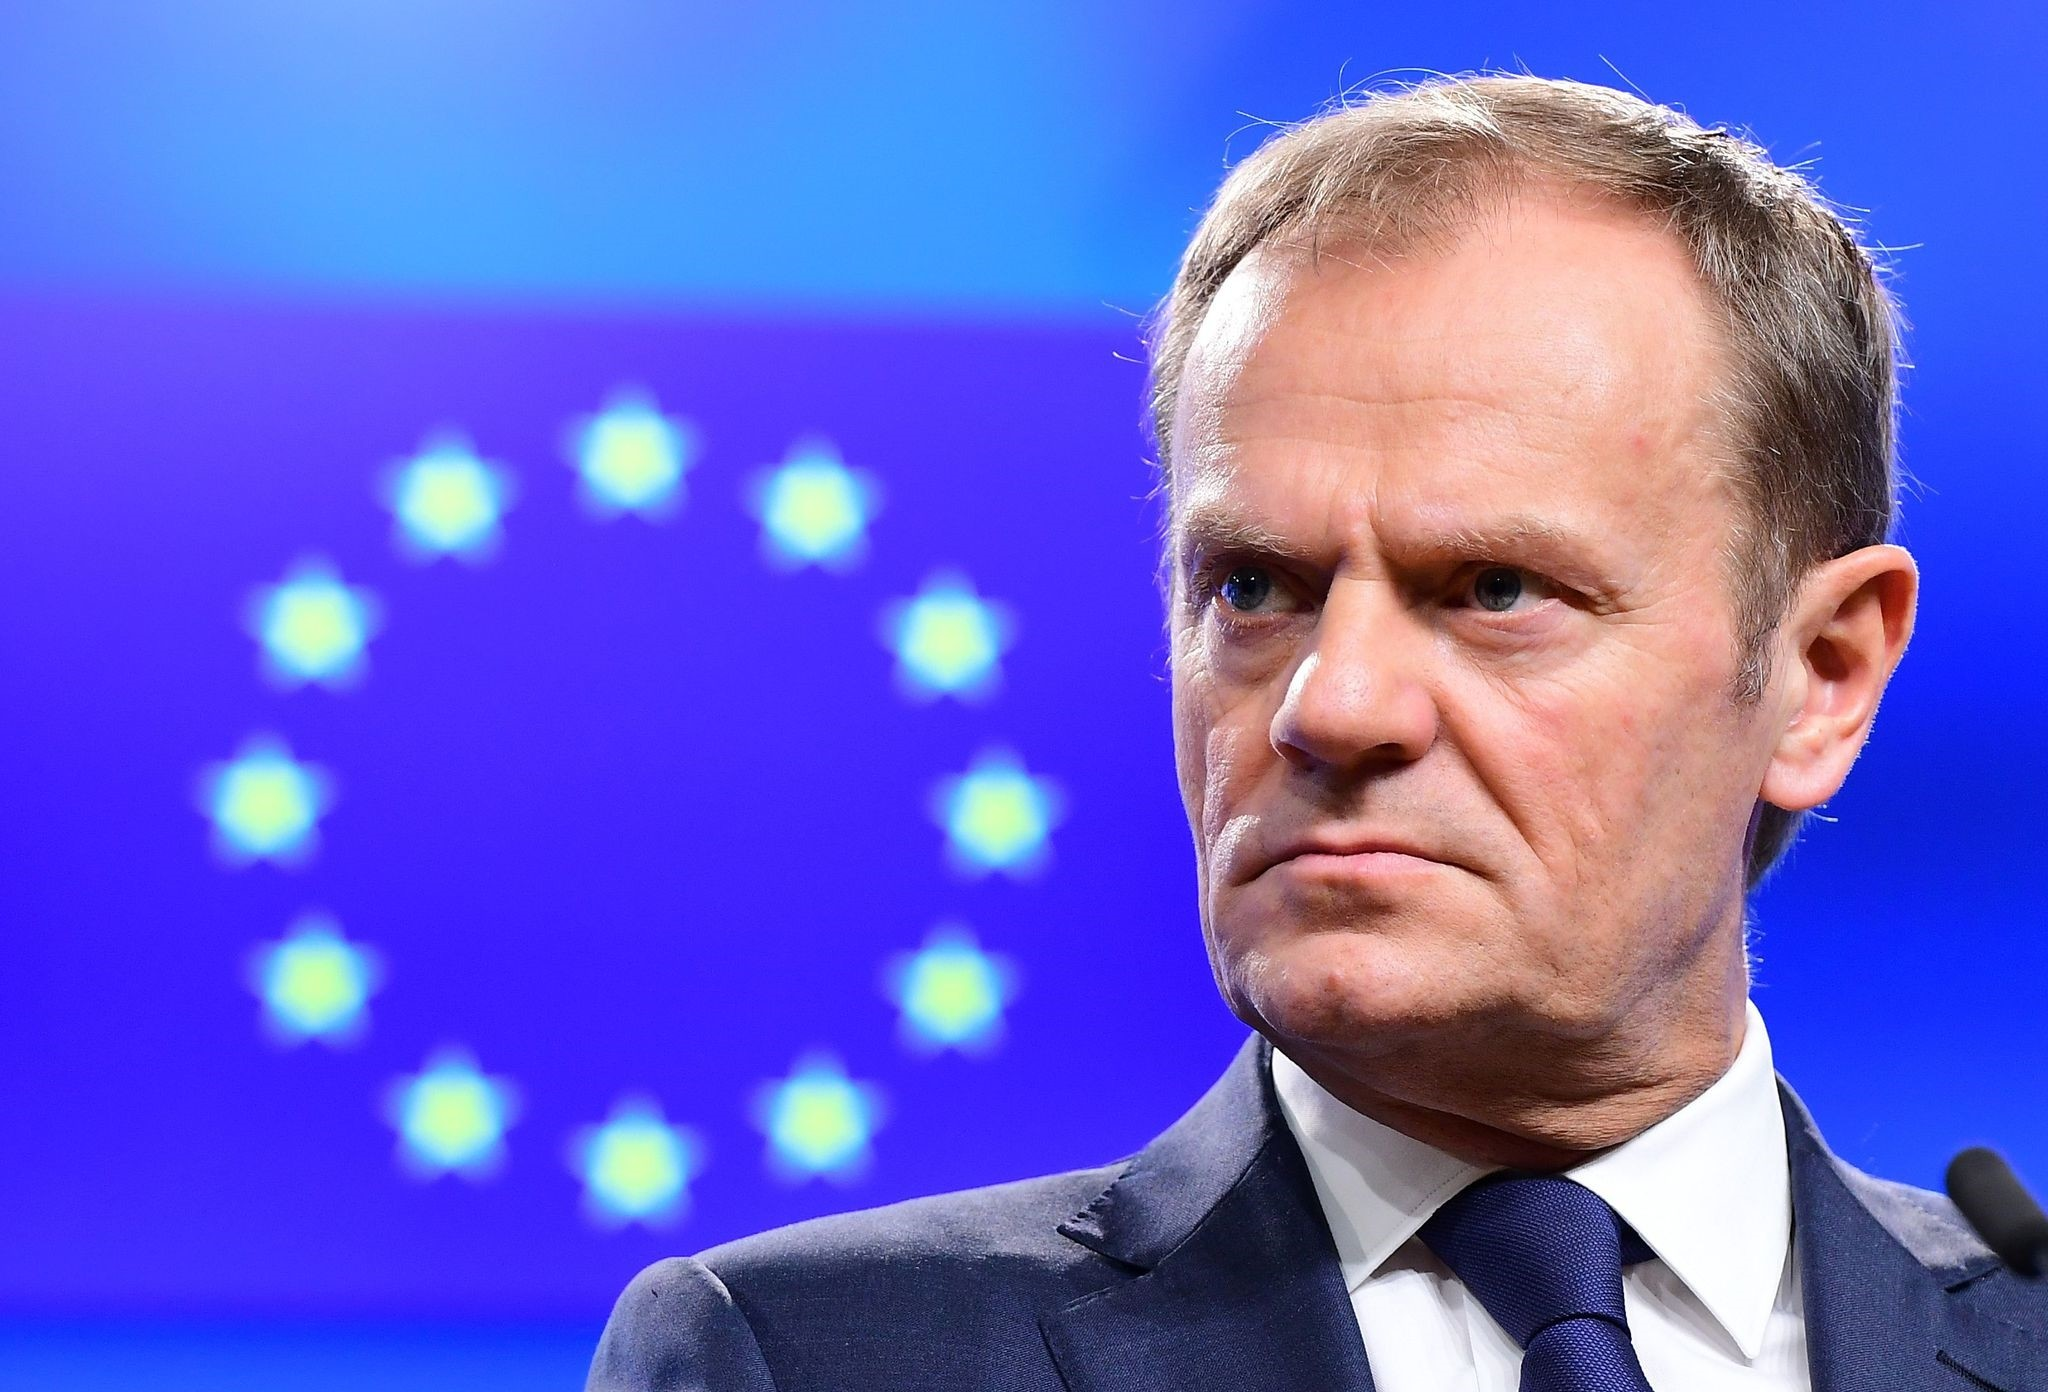 European Council President Donald Tusk reacts during a press statement announcing that an EU leaders' summit will take place to decide objectives for Brexit talks, March 21, 2017. (AFP Photo)